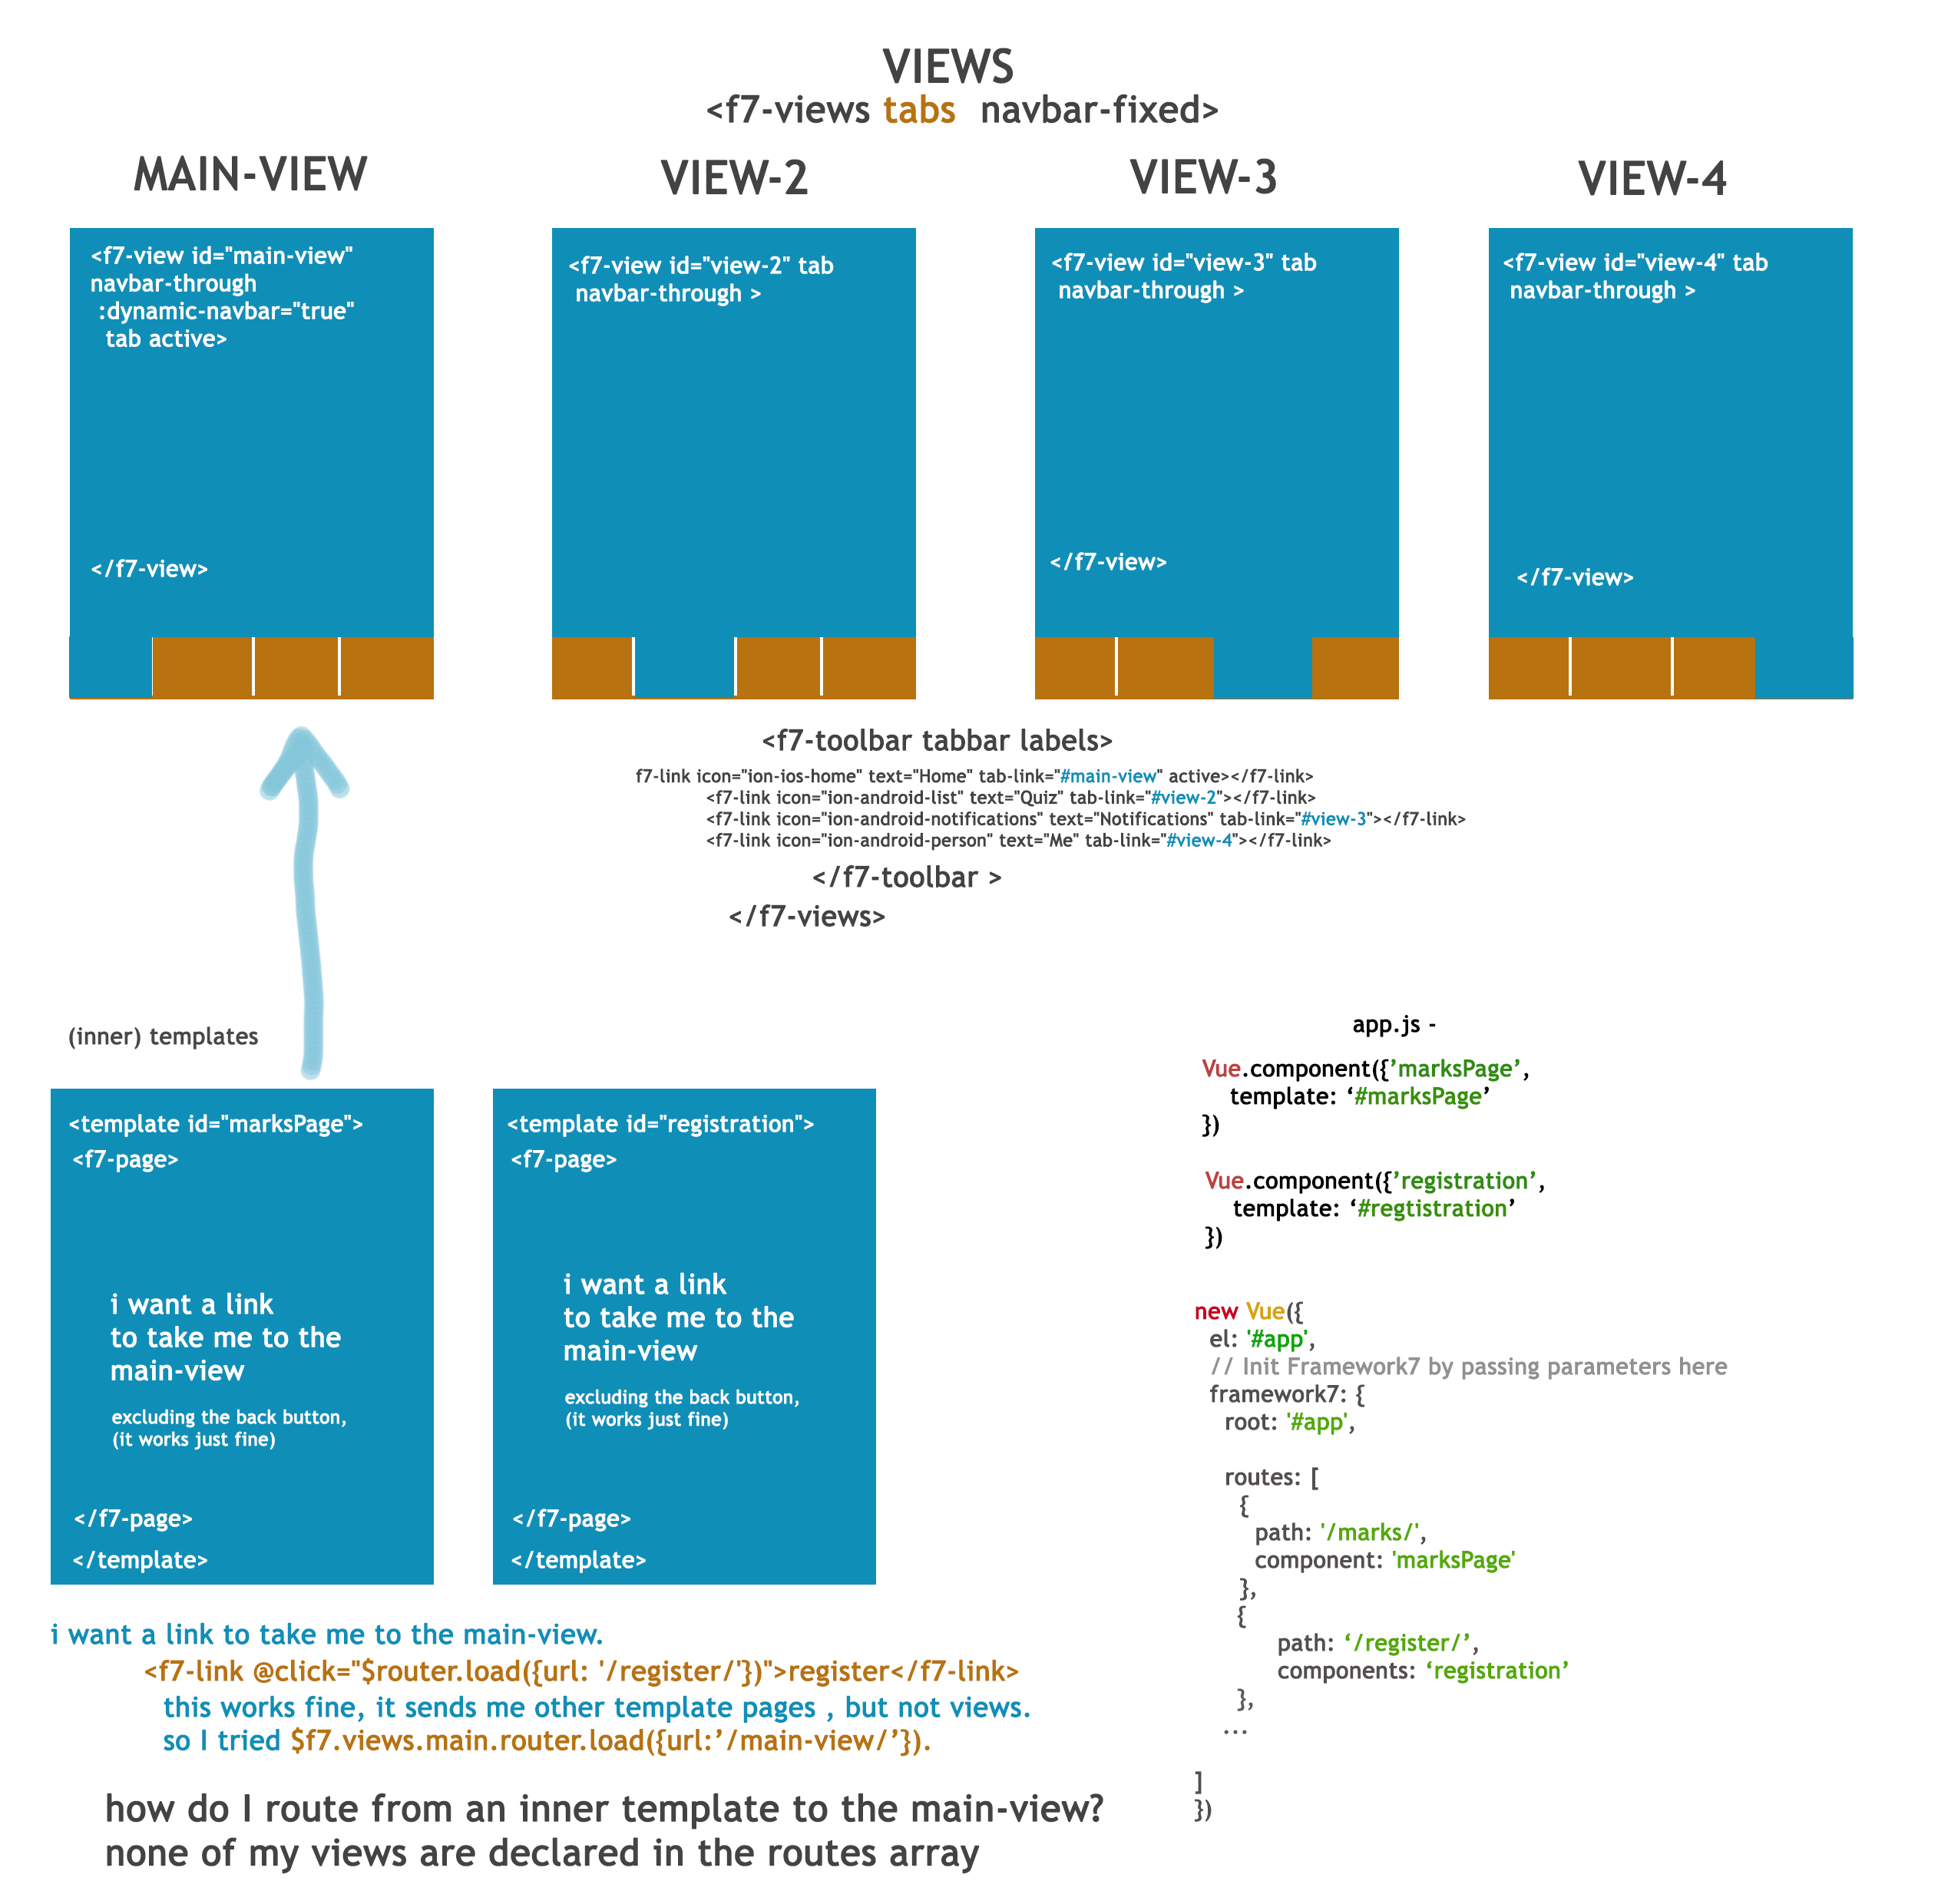 Framework7 + Vue js Route (inner template and views navigating